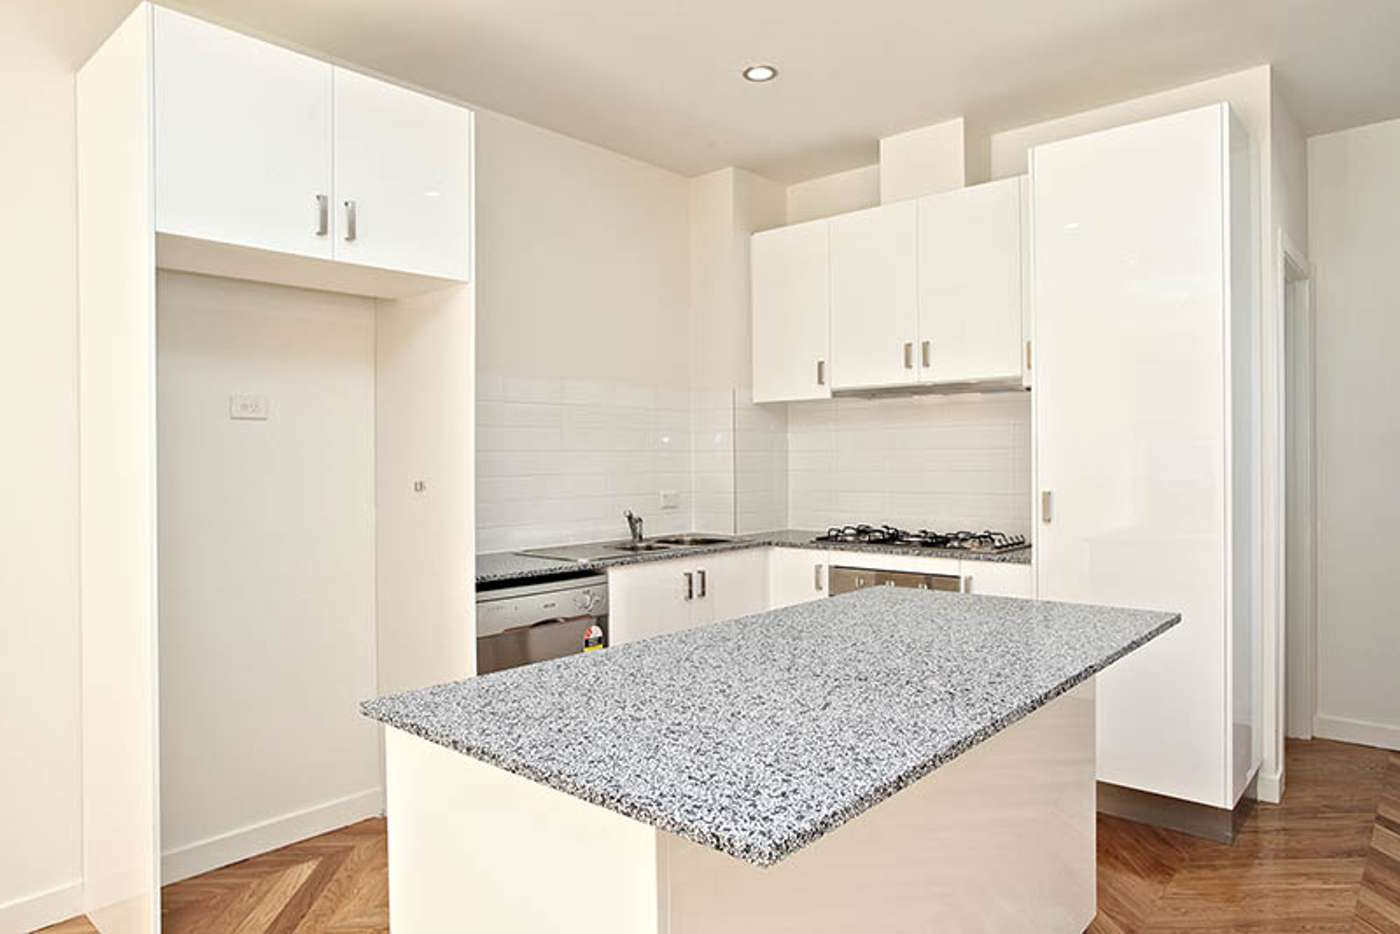 Sixth view of Homely apartment listing, 7/2 Cumming Street, Brunswick VIC 3056